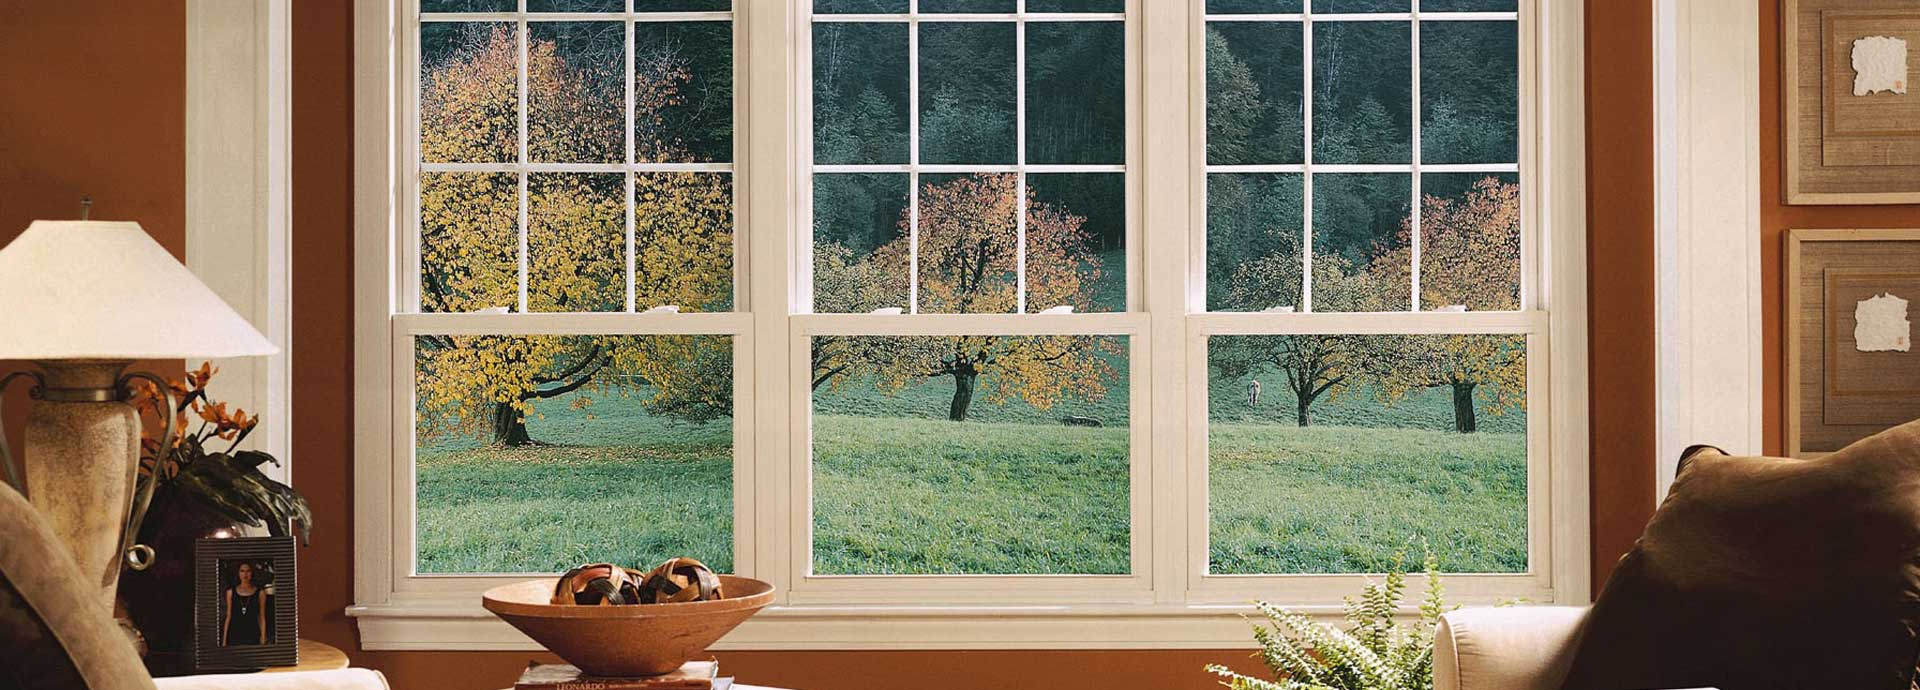 reliable window installers